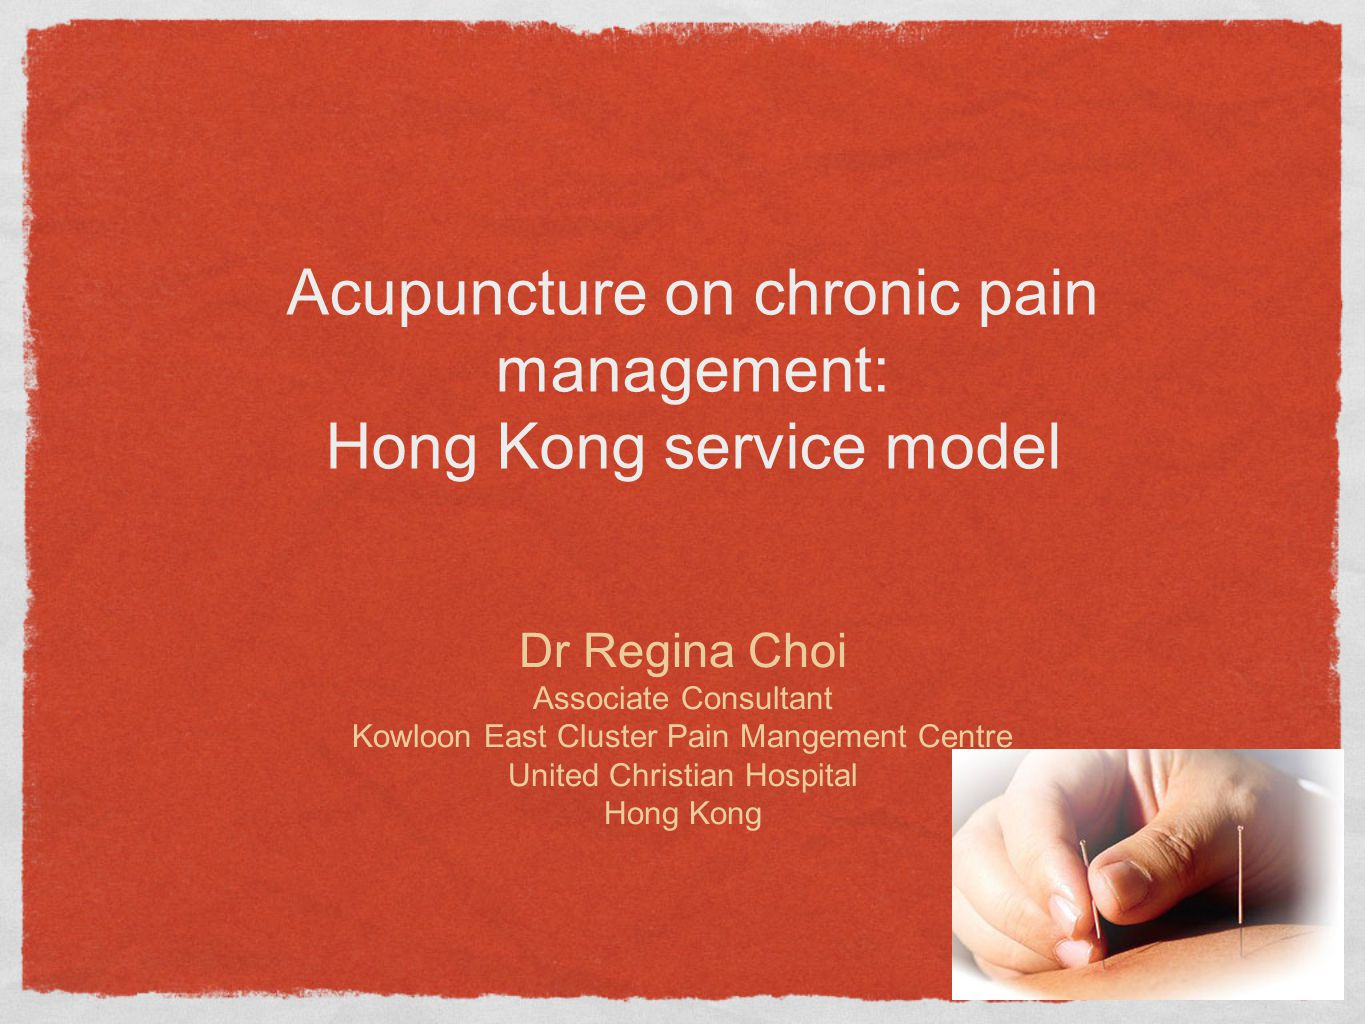 Acupuncture on chronic pain management: Hong Kong service model Dr Regina Choi Associate Consultant Kowloon East Cluster Pain Mangement Centre United Christian Hospital Hong Kong